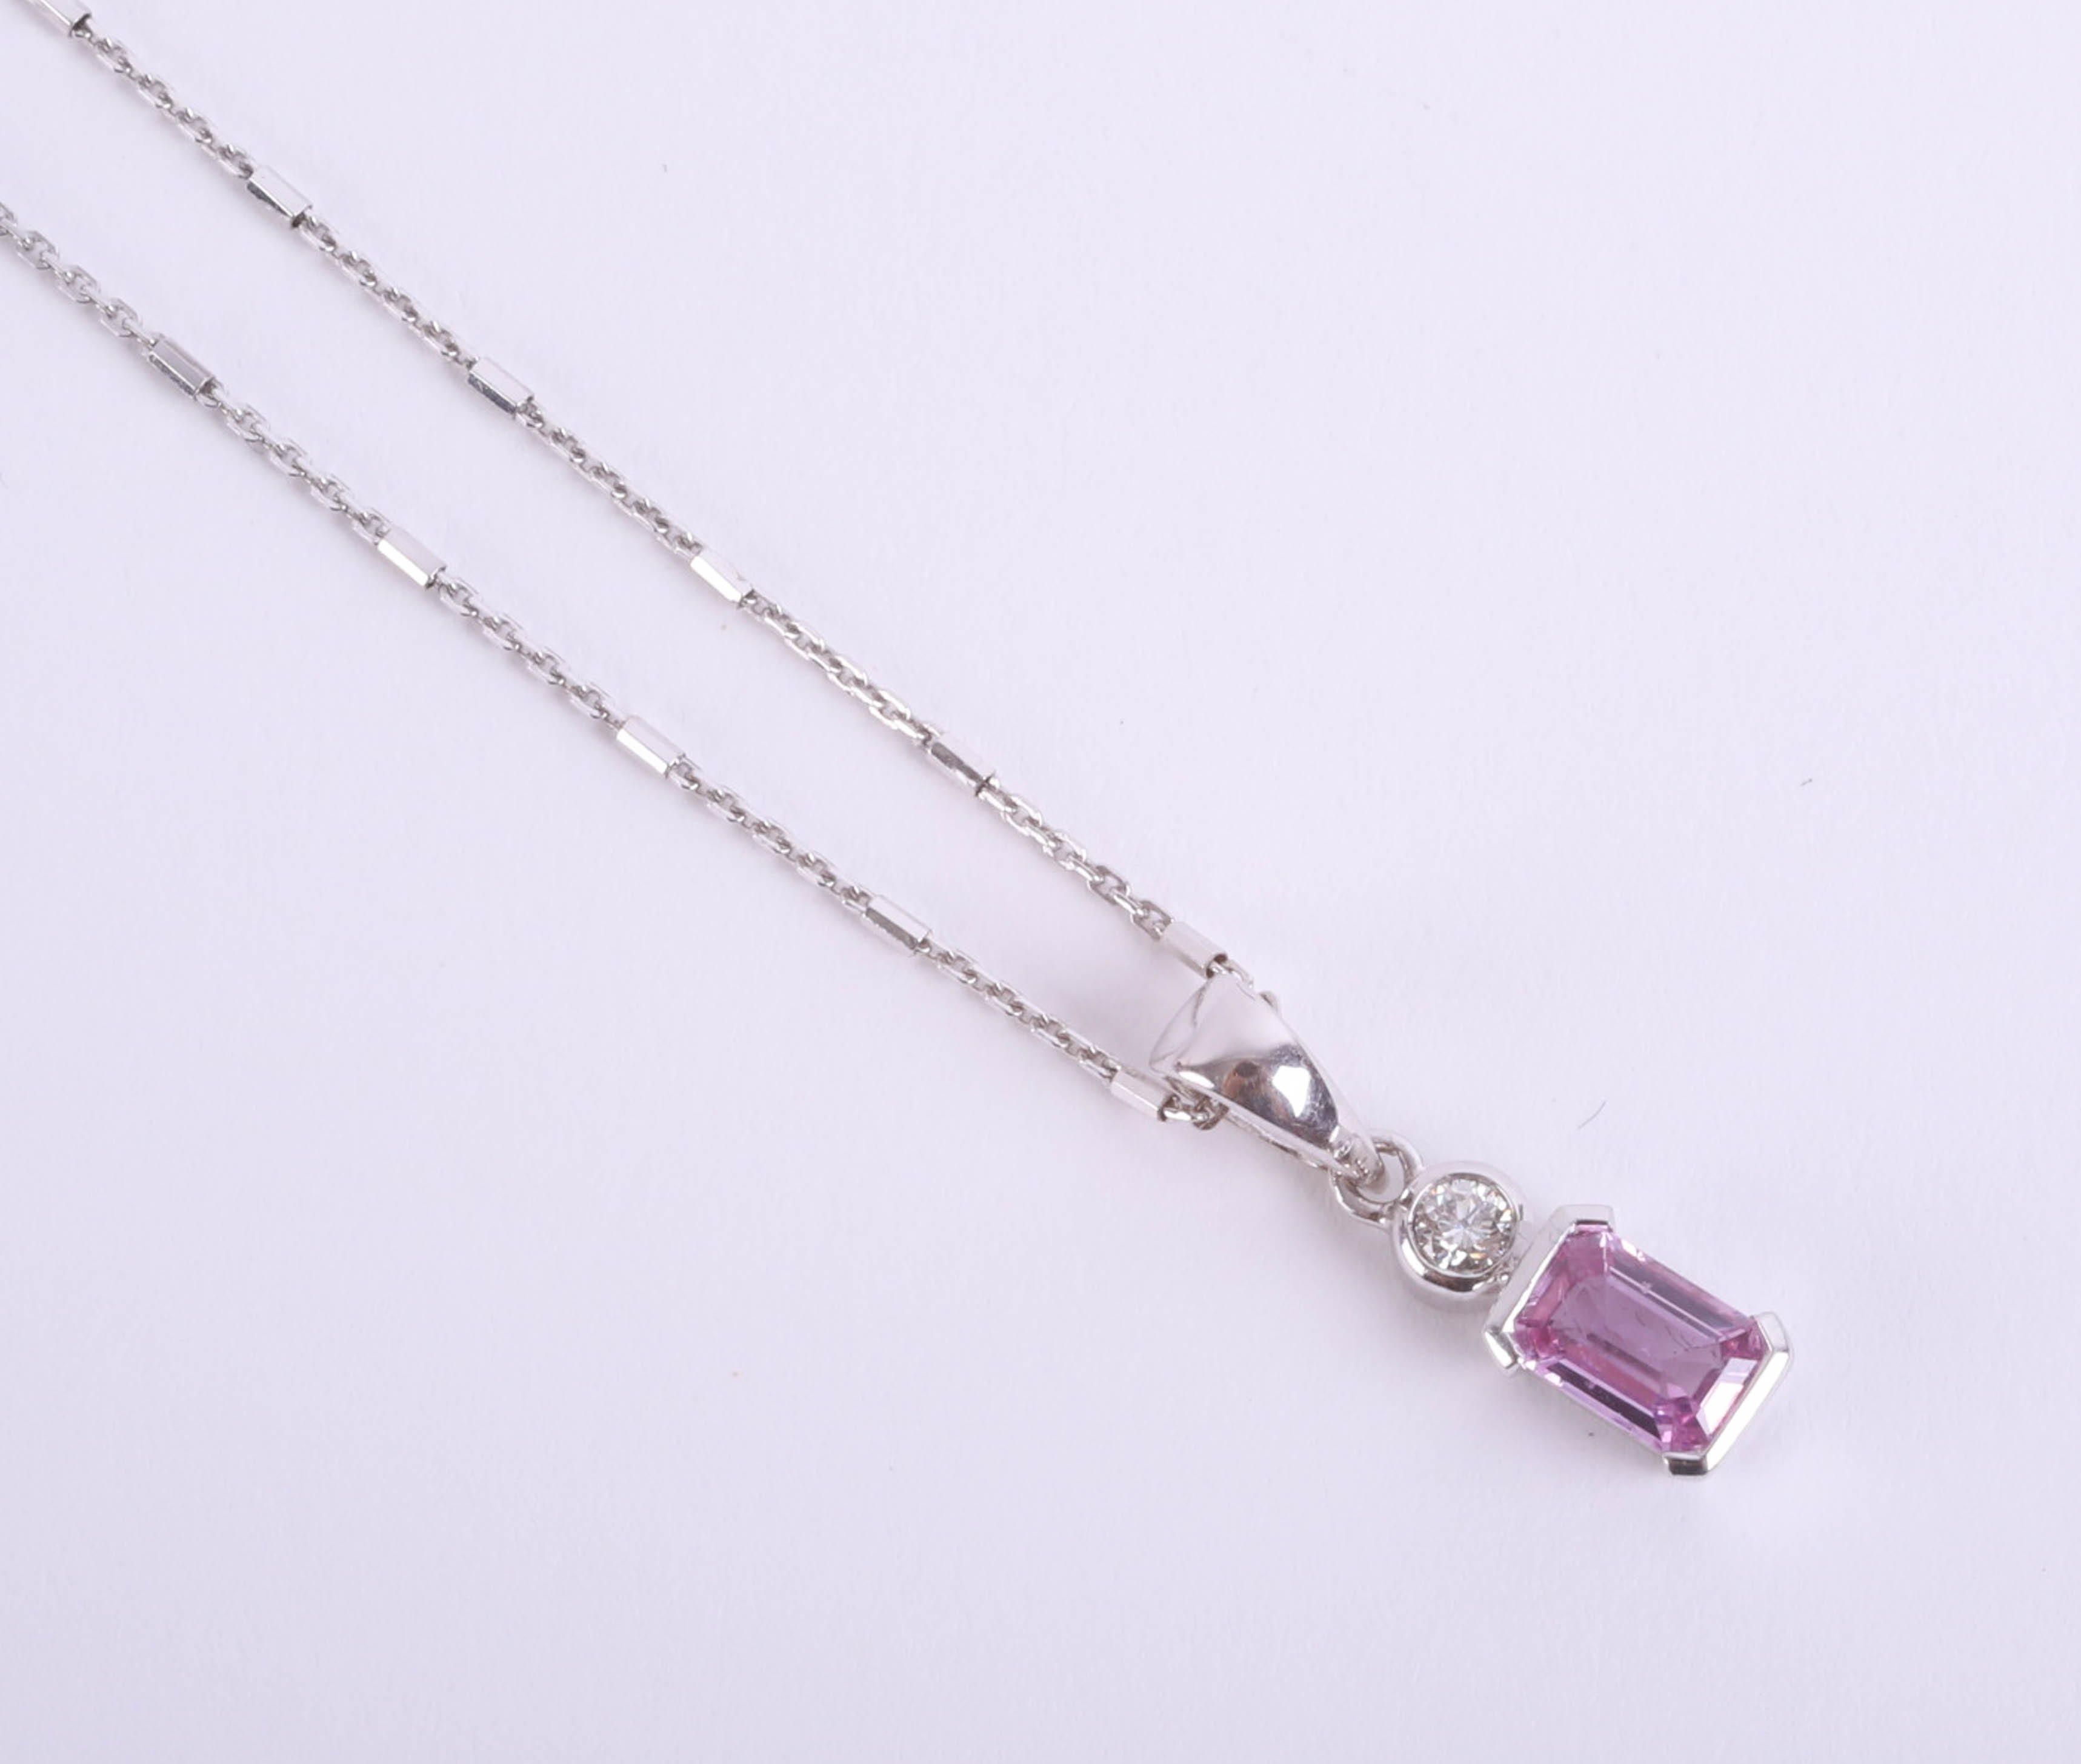 Lot 039 - An 18ct pink sapphire and diamond pendant, in white gold.